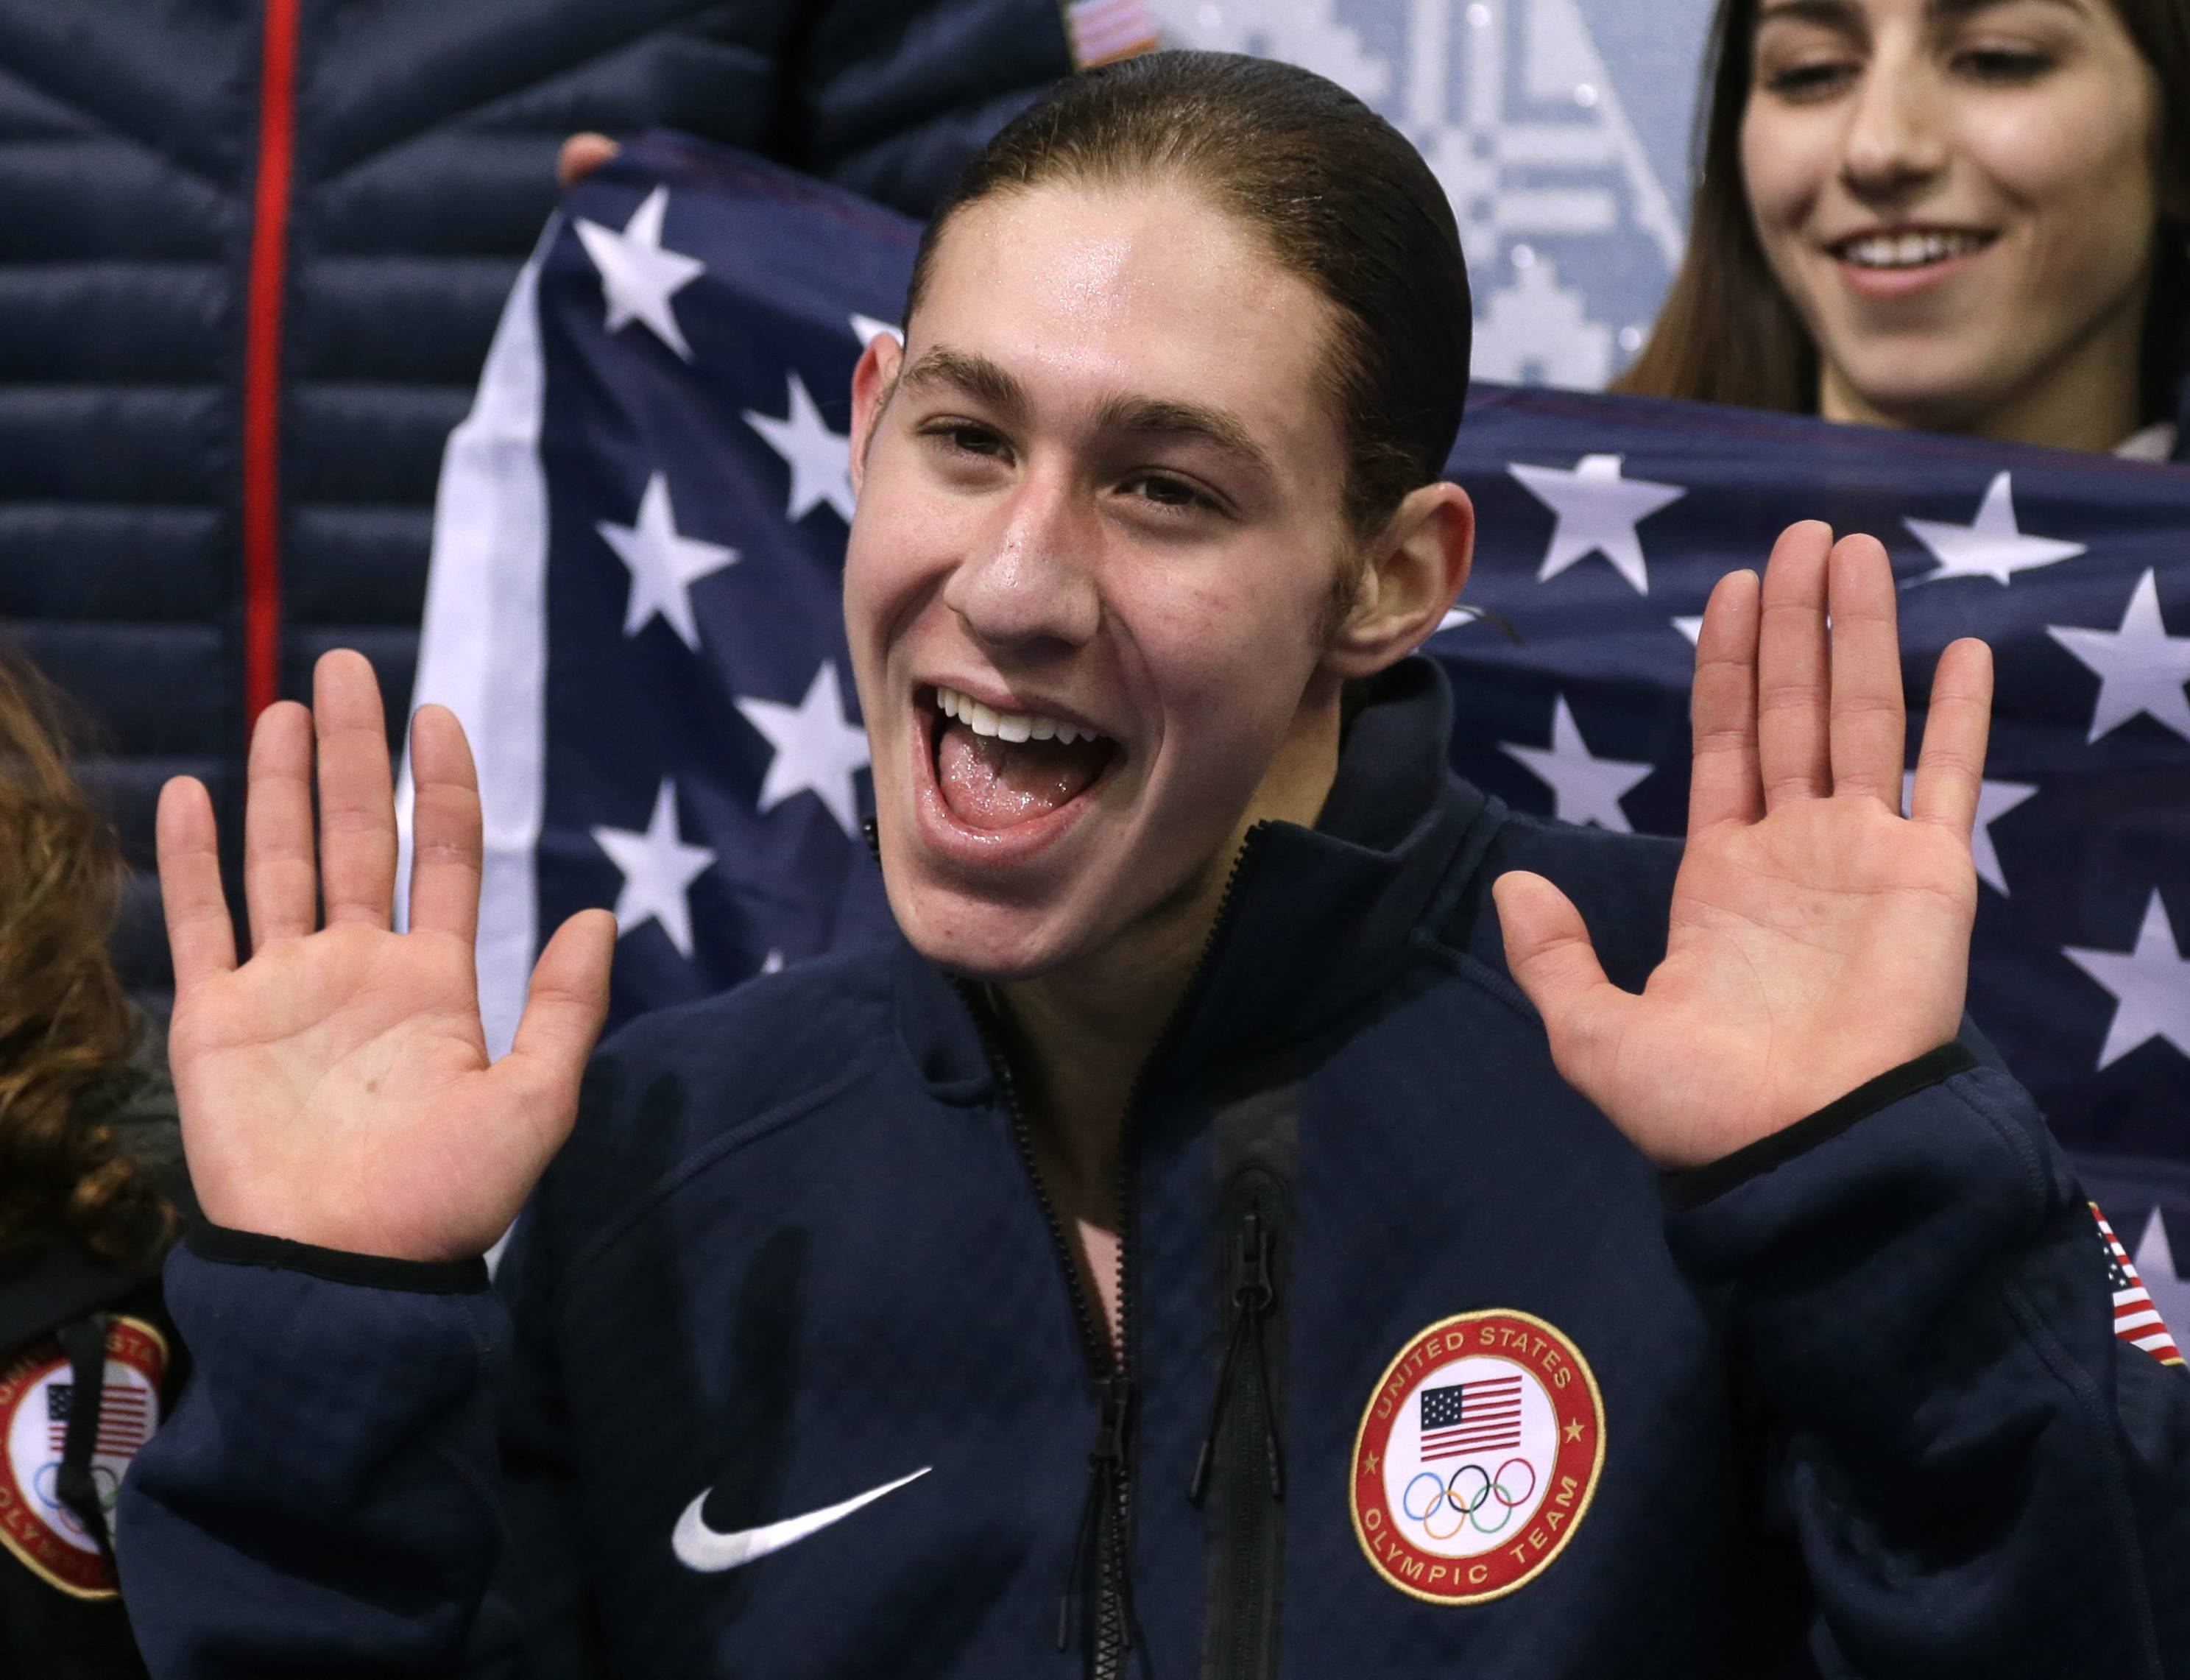 Jason Brown of the United States waves to spectators after competing in the men's team free skate figure skating competition Sunday at the Iceberg Skating Palace during the 2014 Winter Olympics.